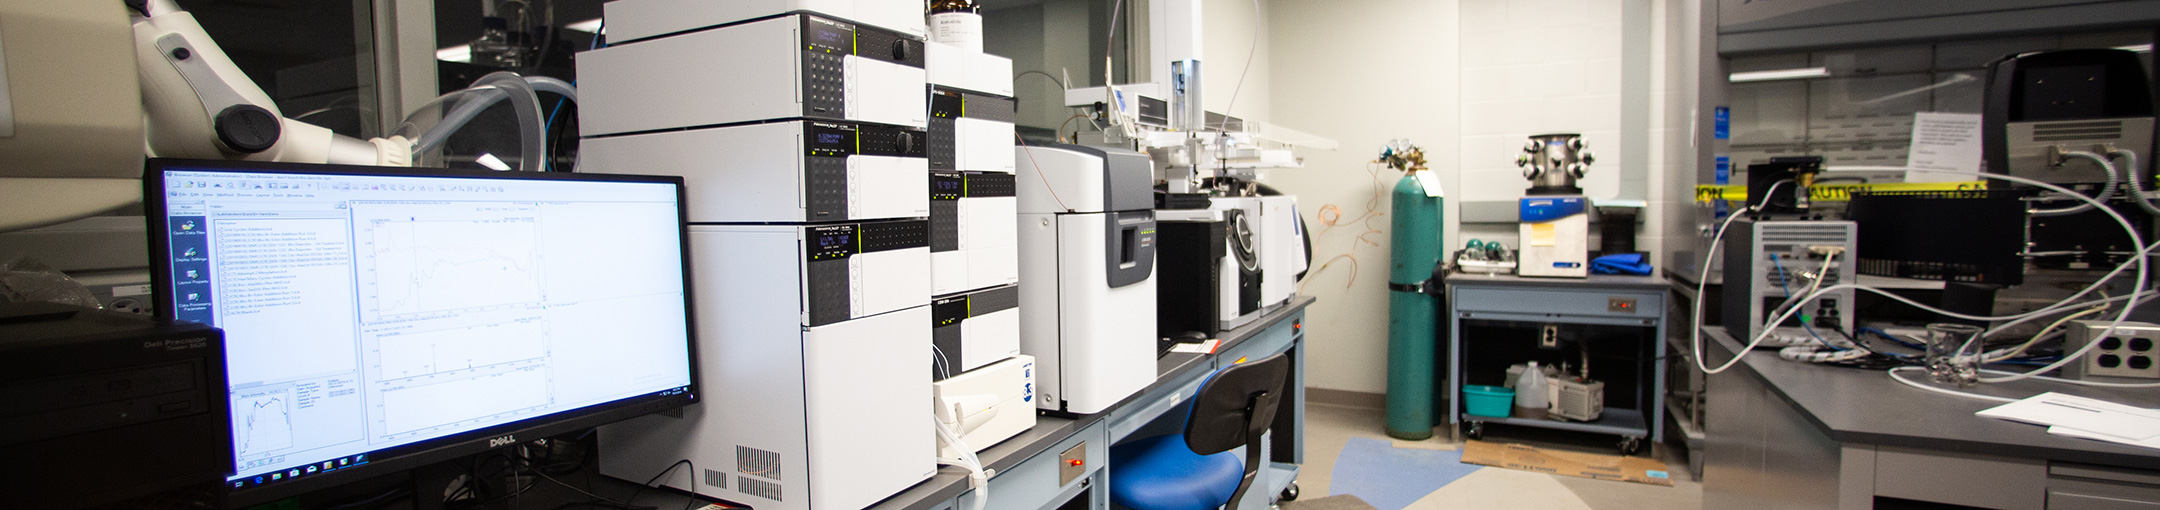 Lab equipment for the Analytical and Material Chemistry Facilities.